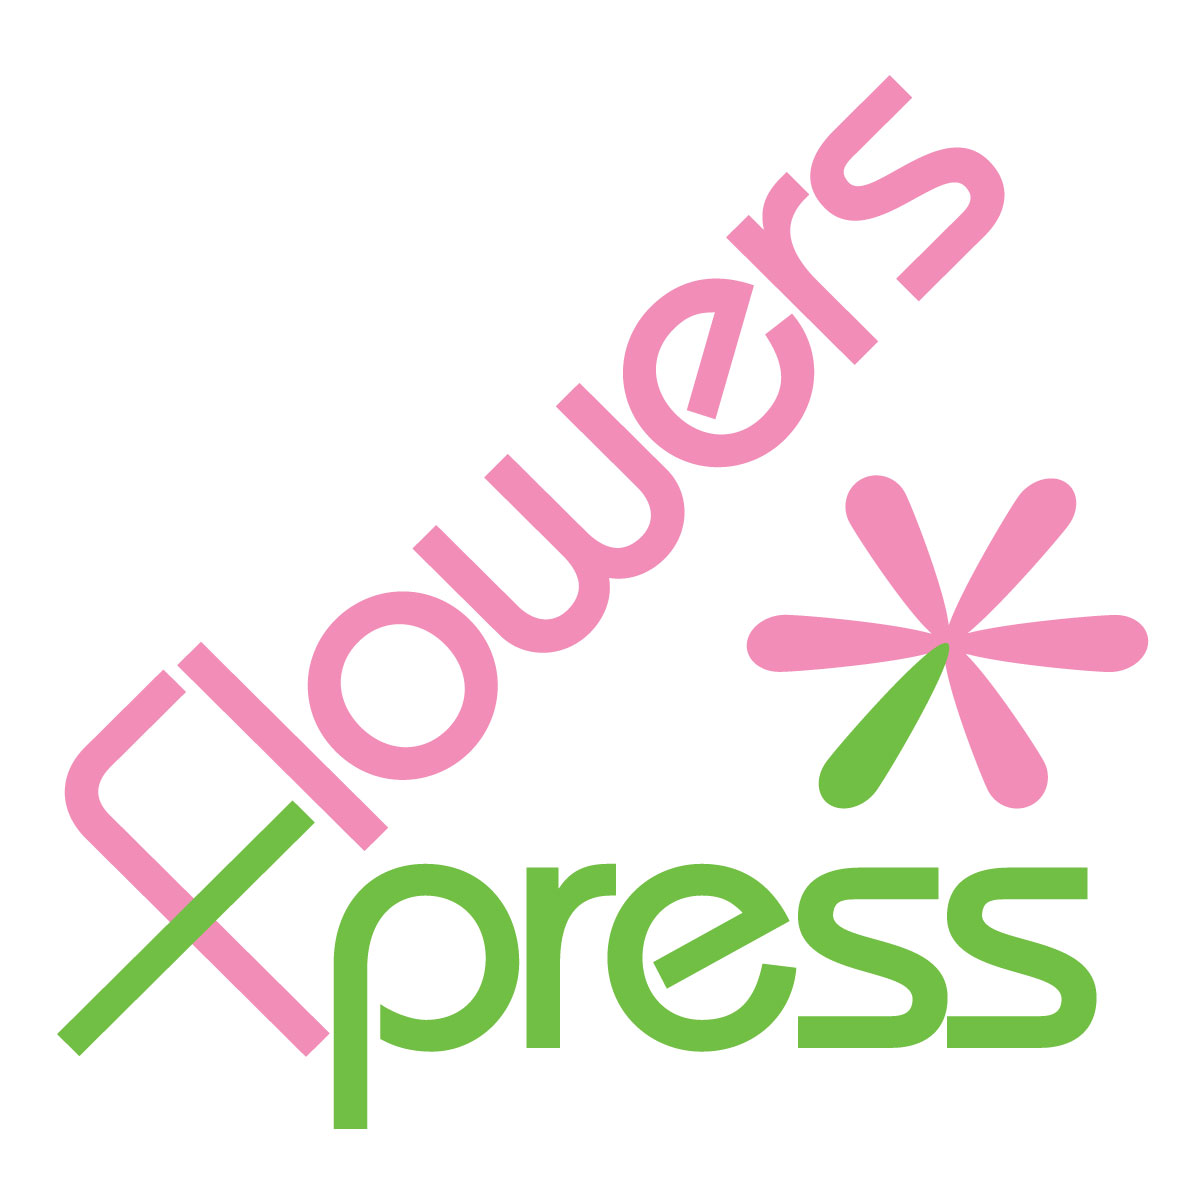 Flowers Xpress Logo